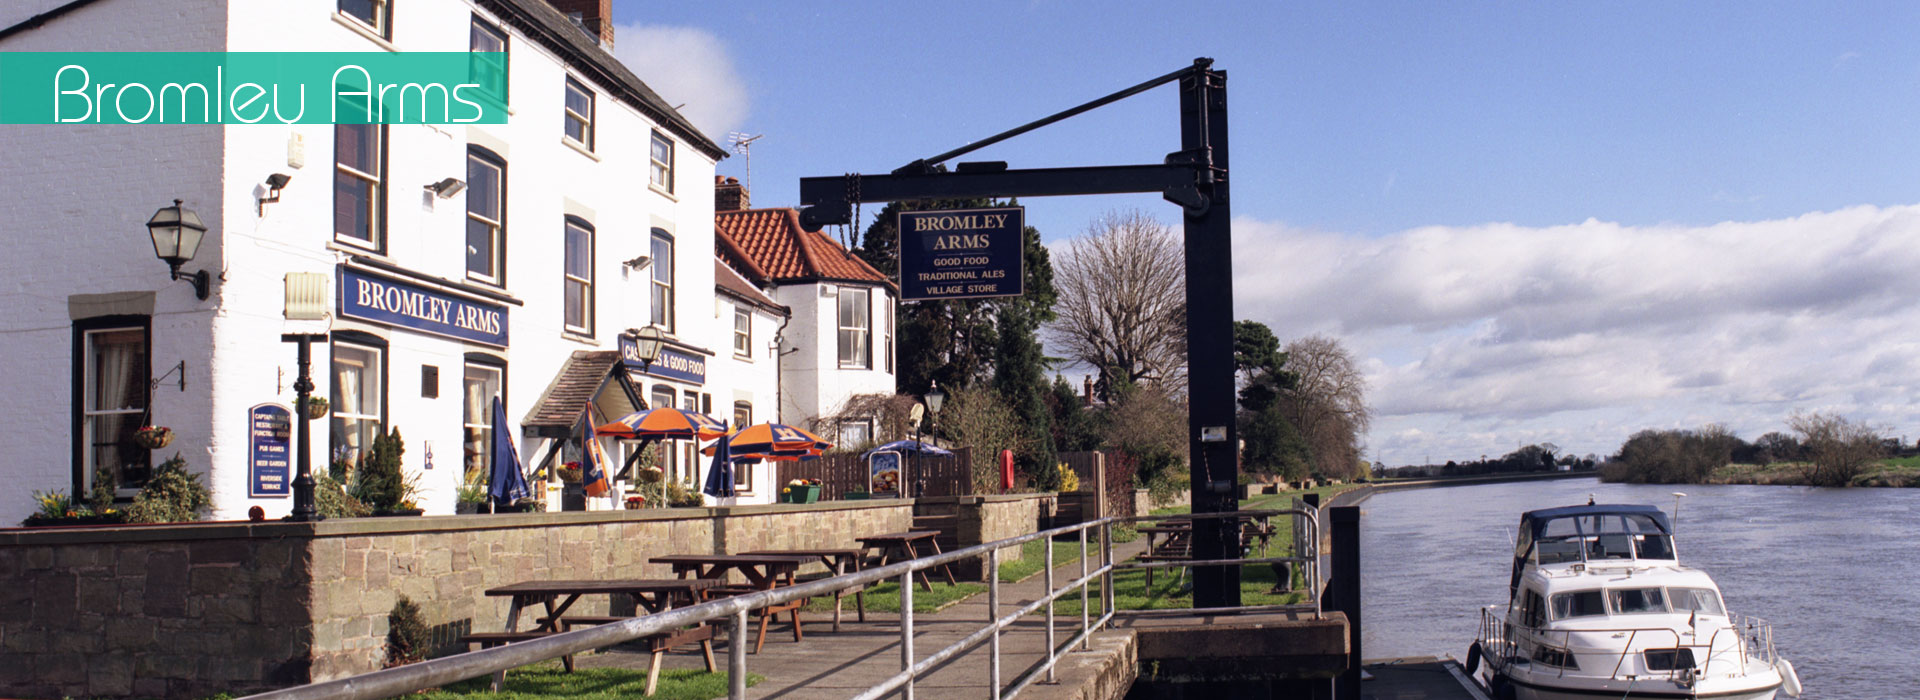 Orientrose contracts limited pubs and bars the bromley arms for The bromley